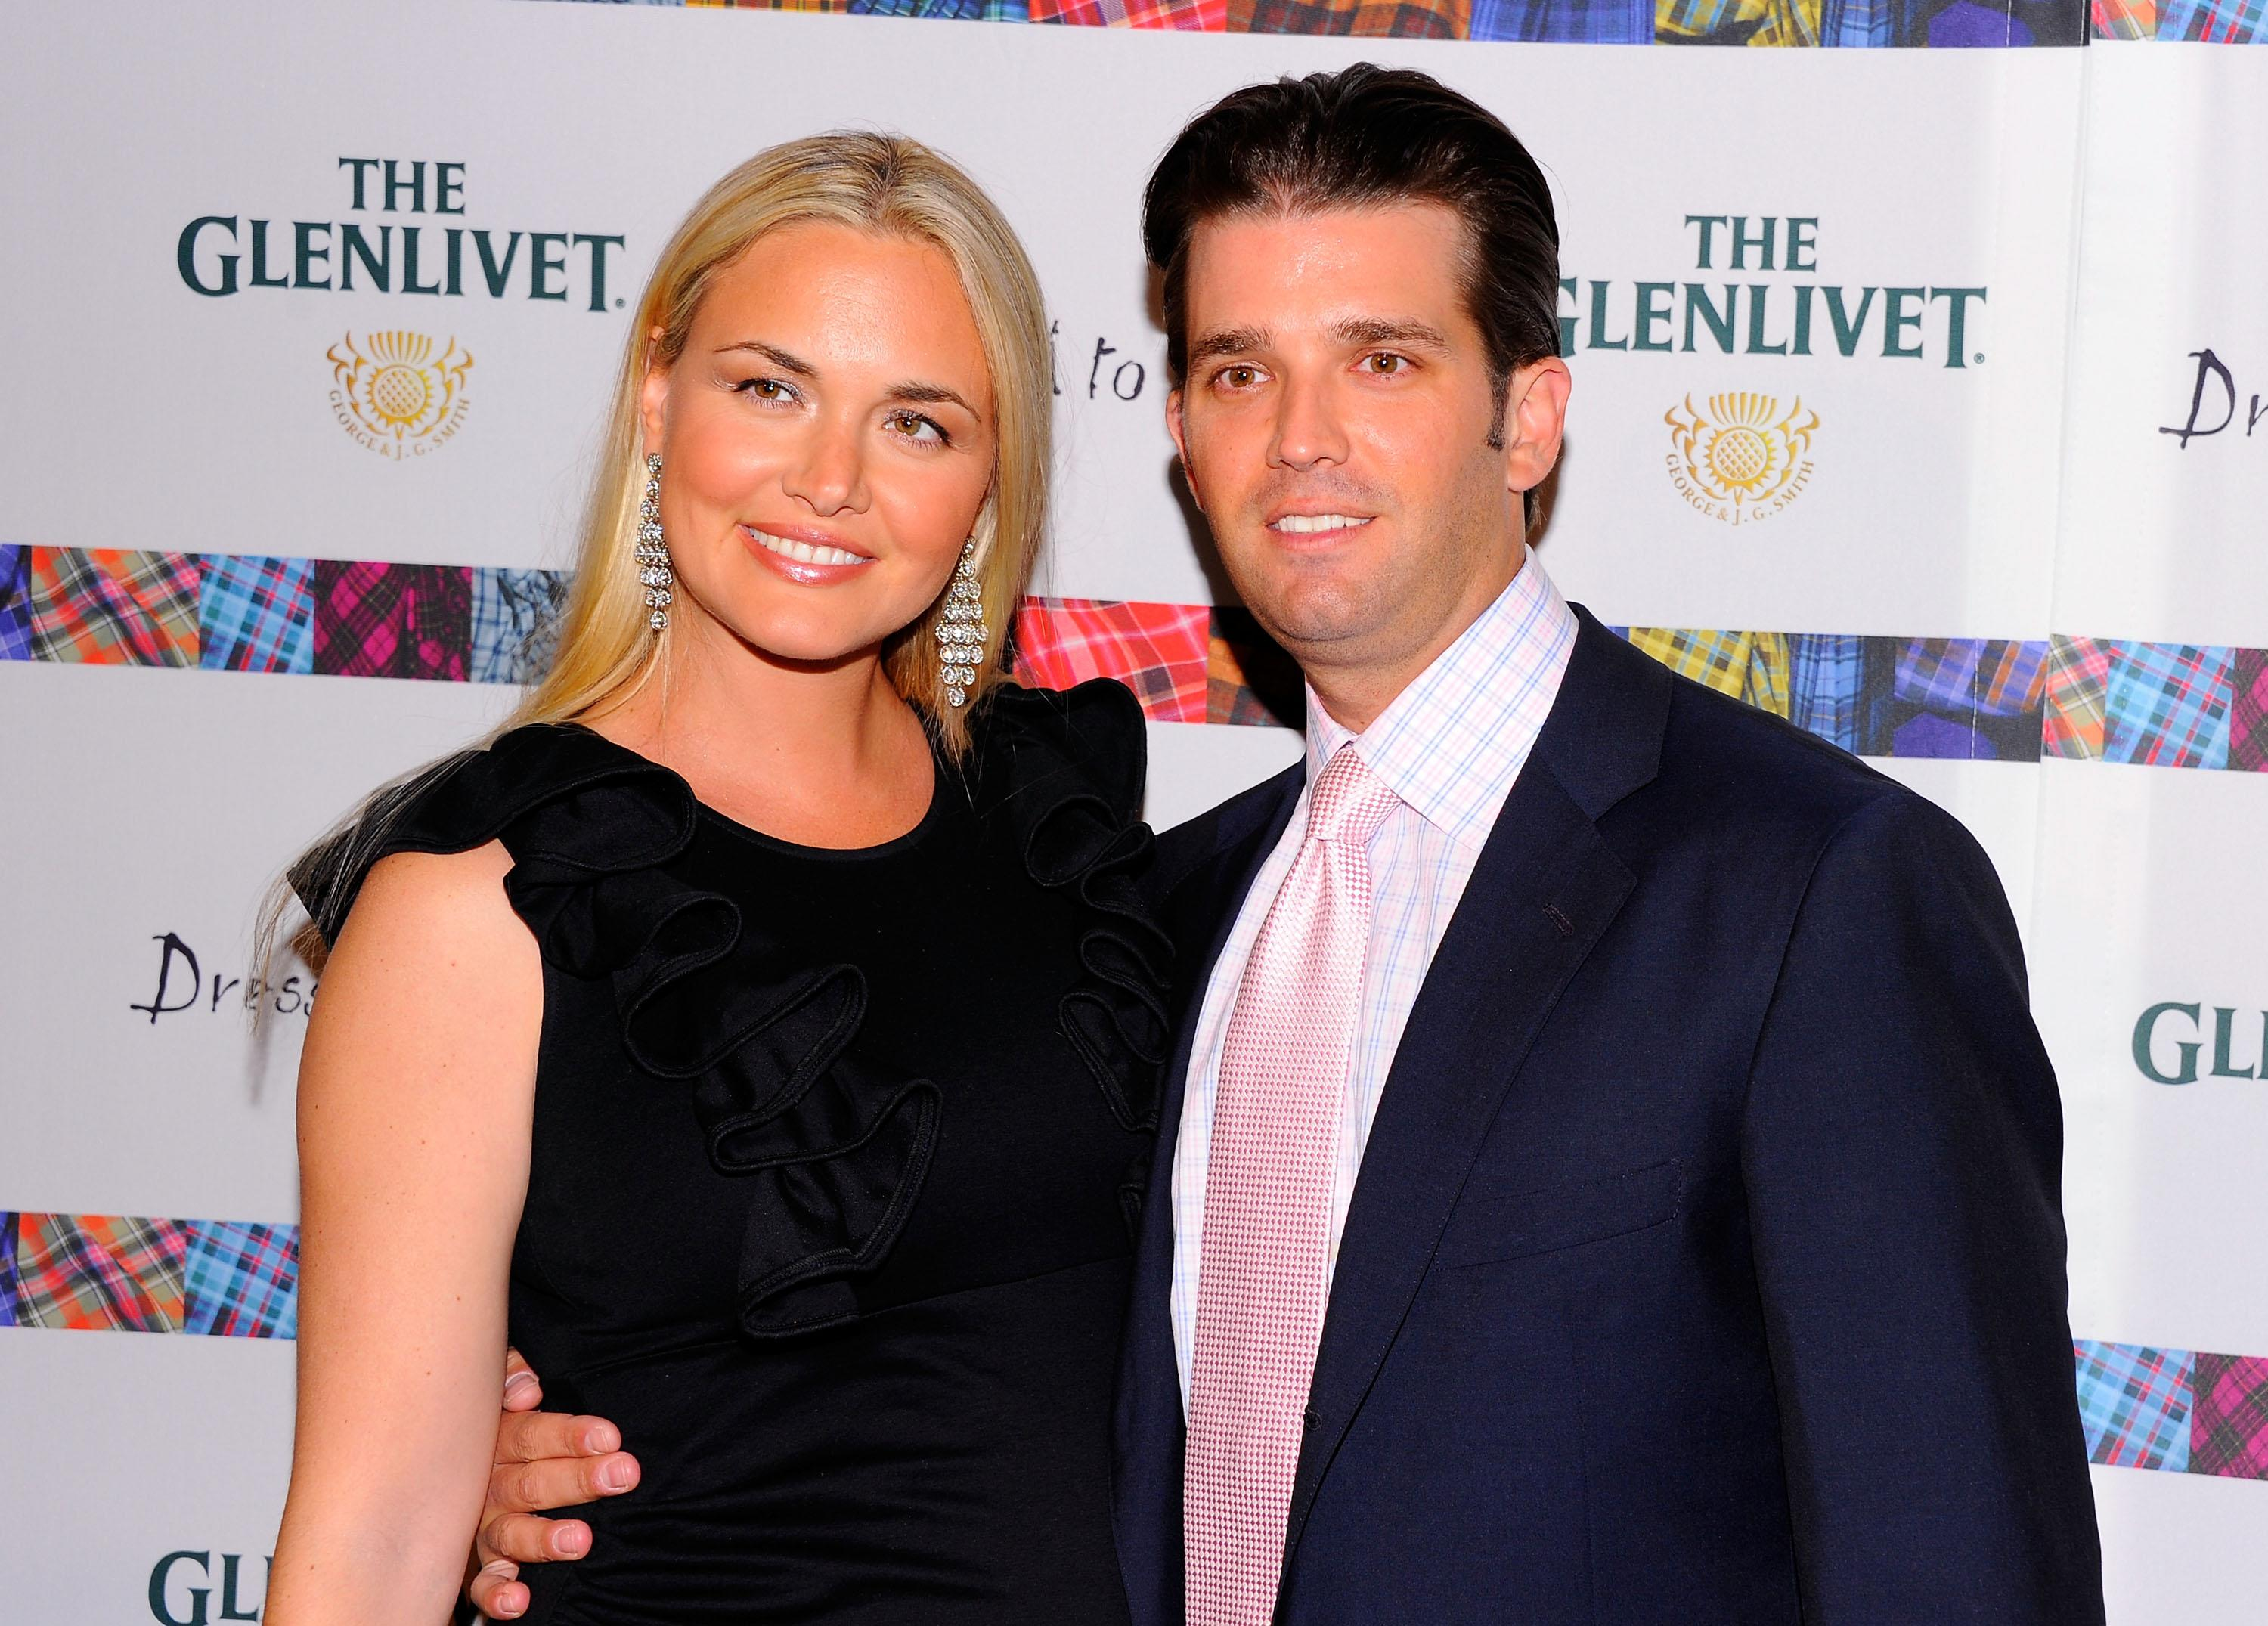 Shocking details are emerging after Vanessa Trump and Donald Trump Jr. announced their divorce